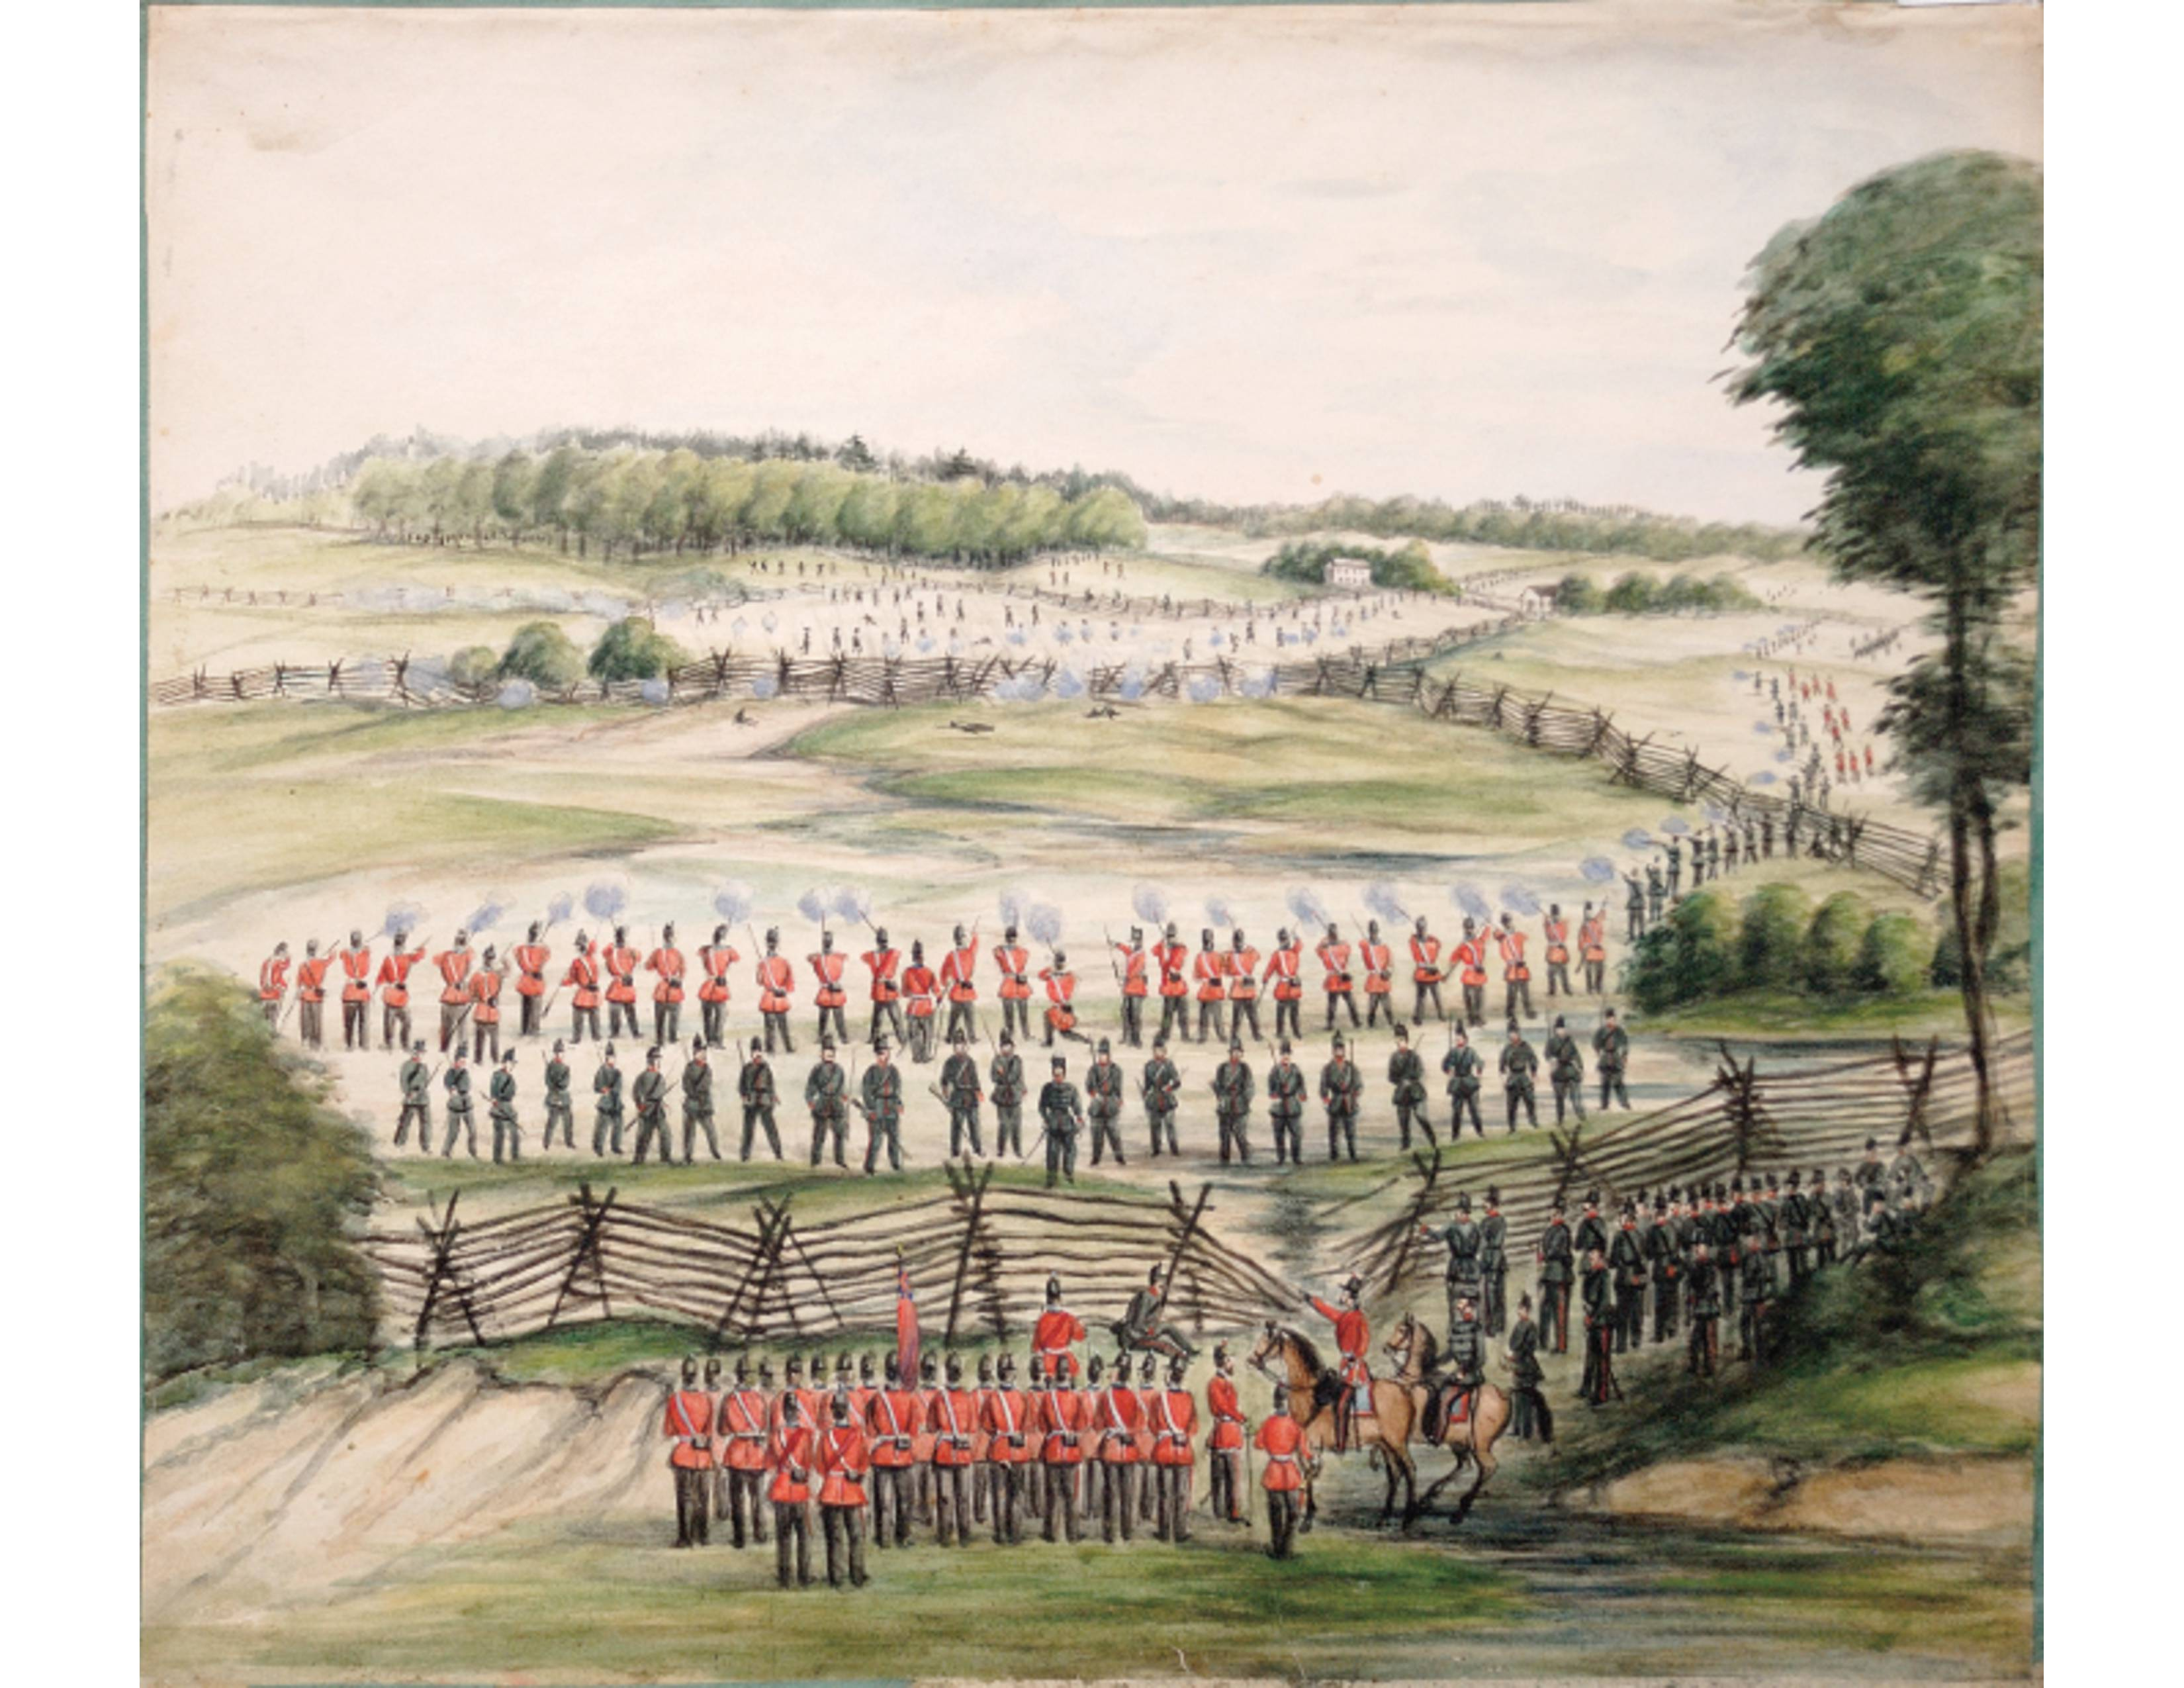 The Queen's Own Rifles and 13th Battalion (now Royal Hamilton Light Infantry) in a watercolour painting done during the time of the Ridgeway Battle. It will be included in a new book called First Hand Accounts of the 1866 Fenian Raid and Battle of Ridgeway featured in a six-month Canada 150 exhibit at the Canadian War Museum.